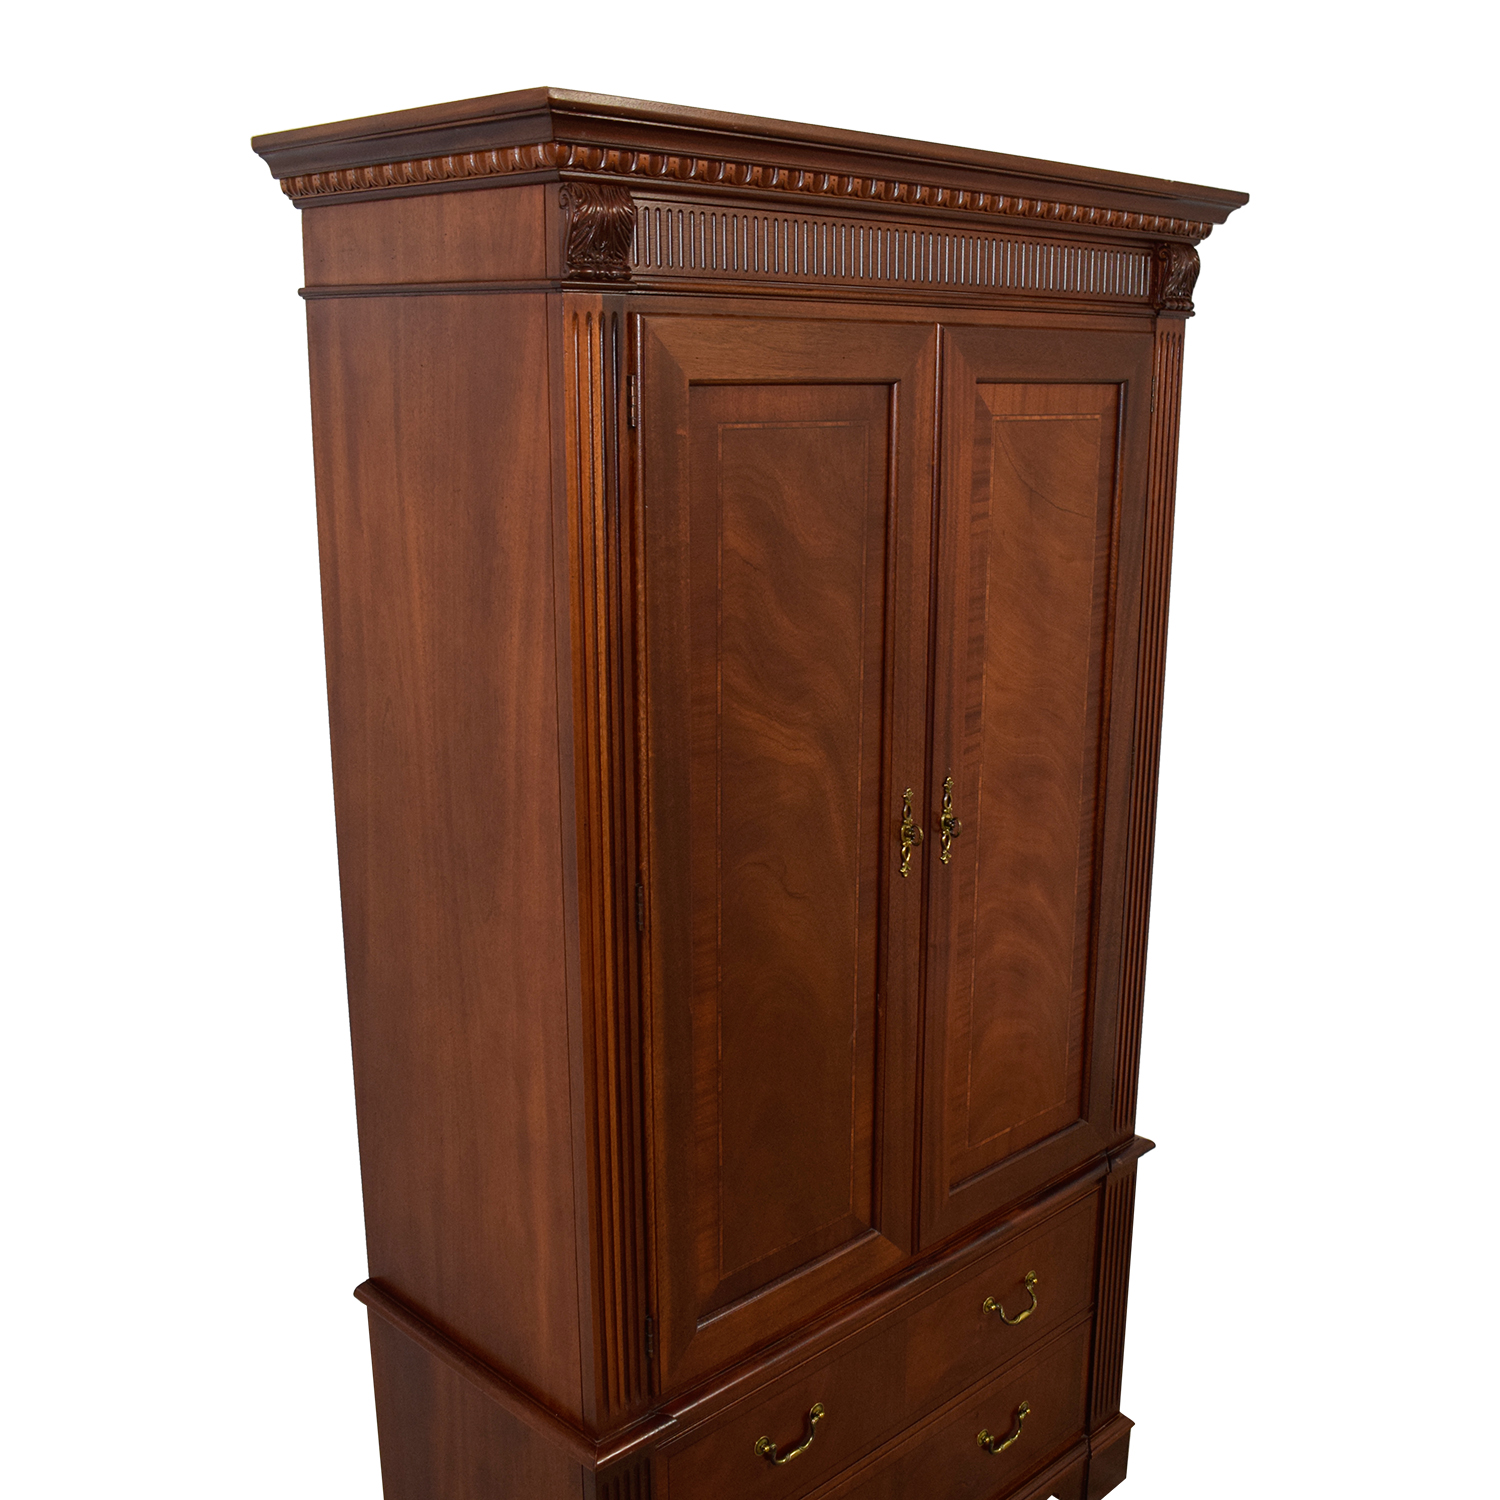 Ethan Allen Used Furniture >> 87% OFF - Ethan Allen Ethan Allen Wood TV Armoire with ...